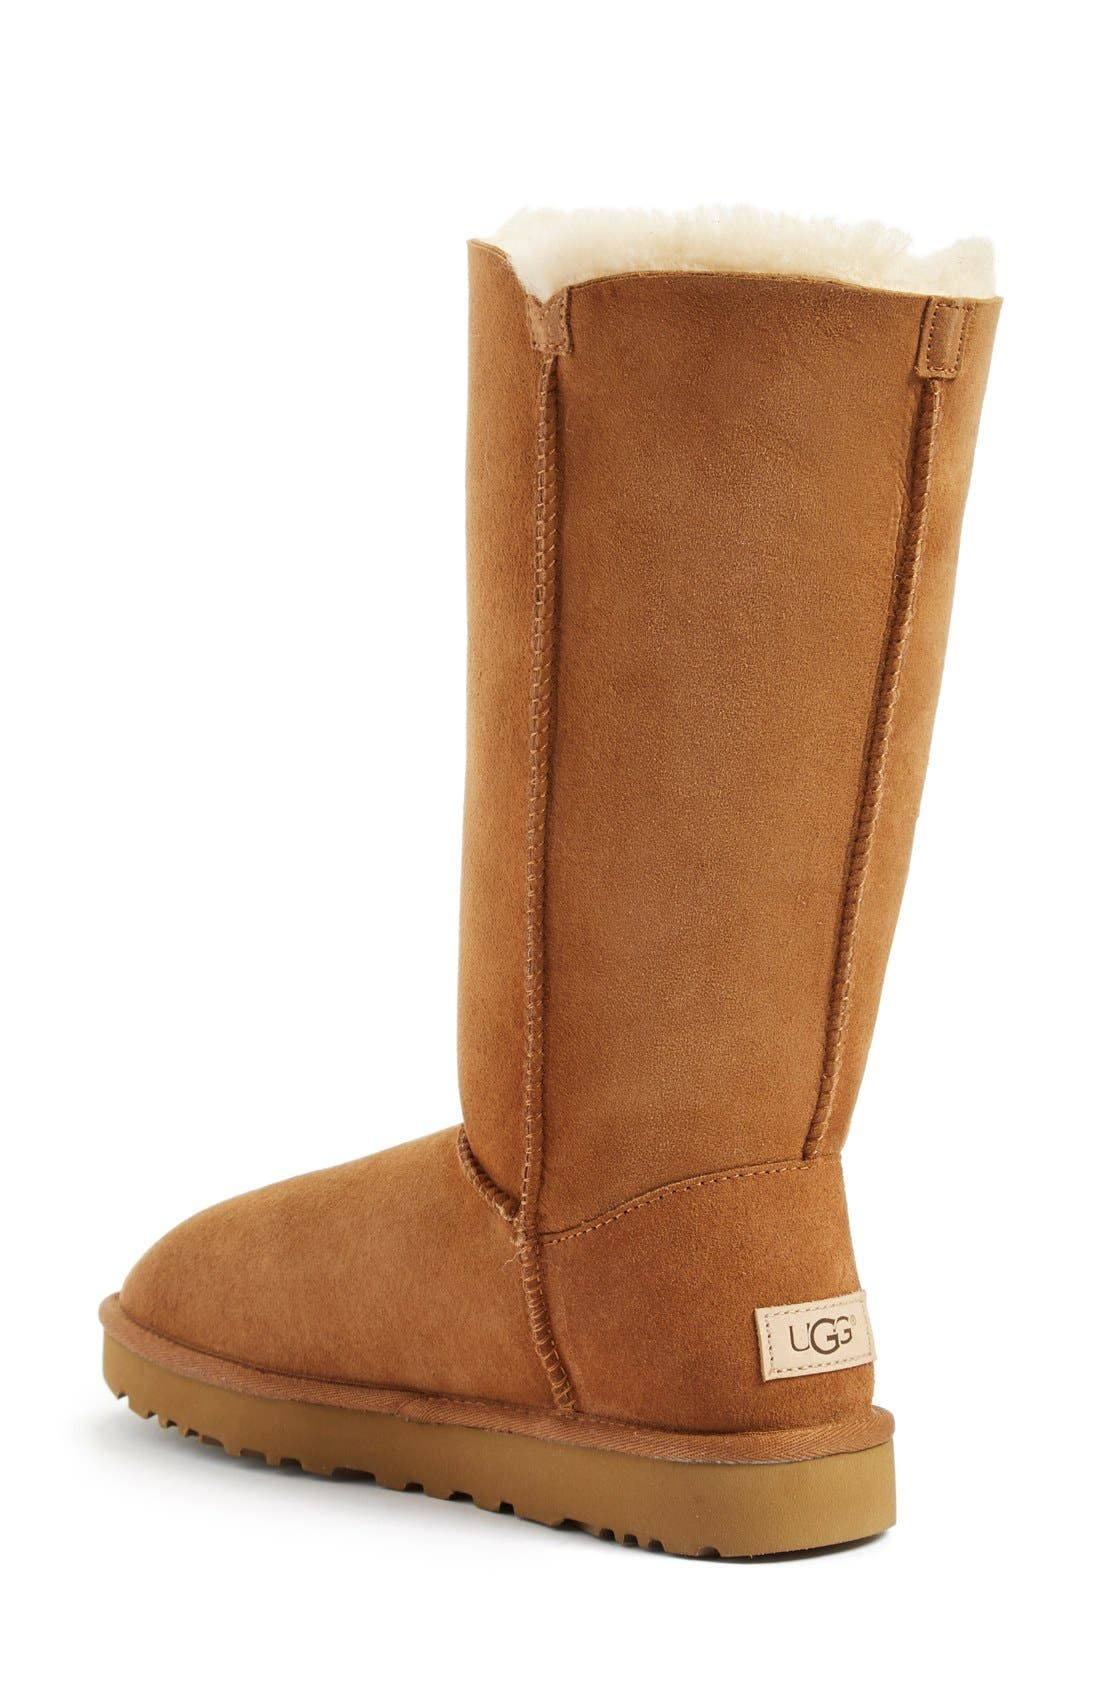 UGG<SUP>®</SUP>, Bailey Button Triplet II Genuine Shearling Boot, Alternate thumbnail 2, color, CHESTNUT SUEDE